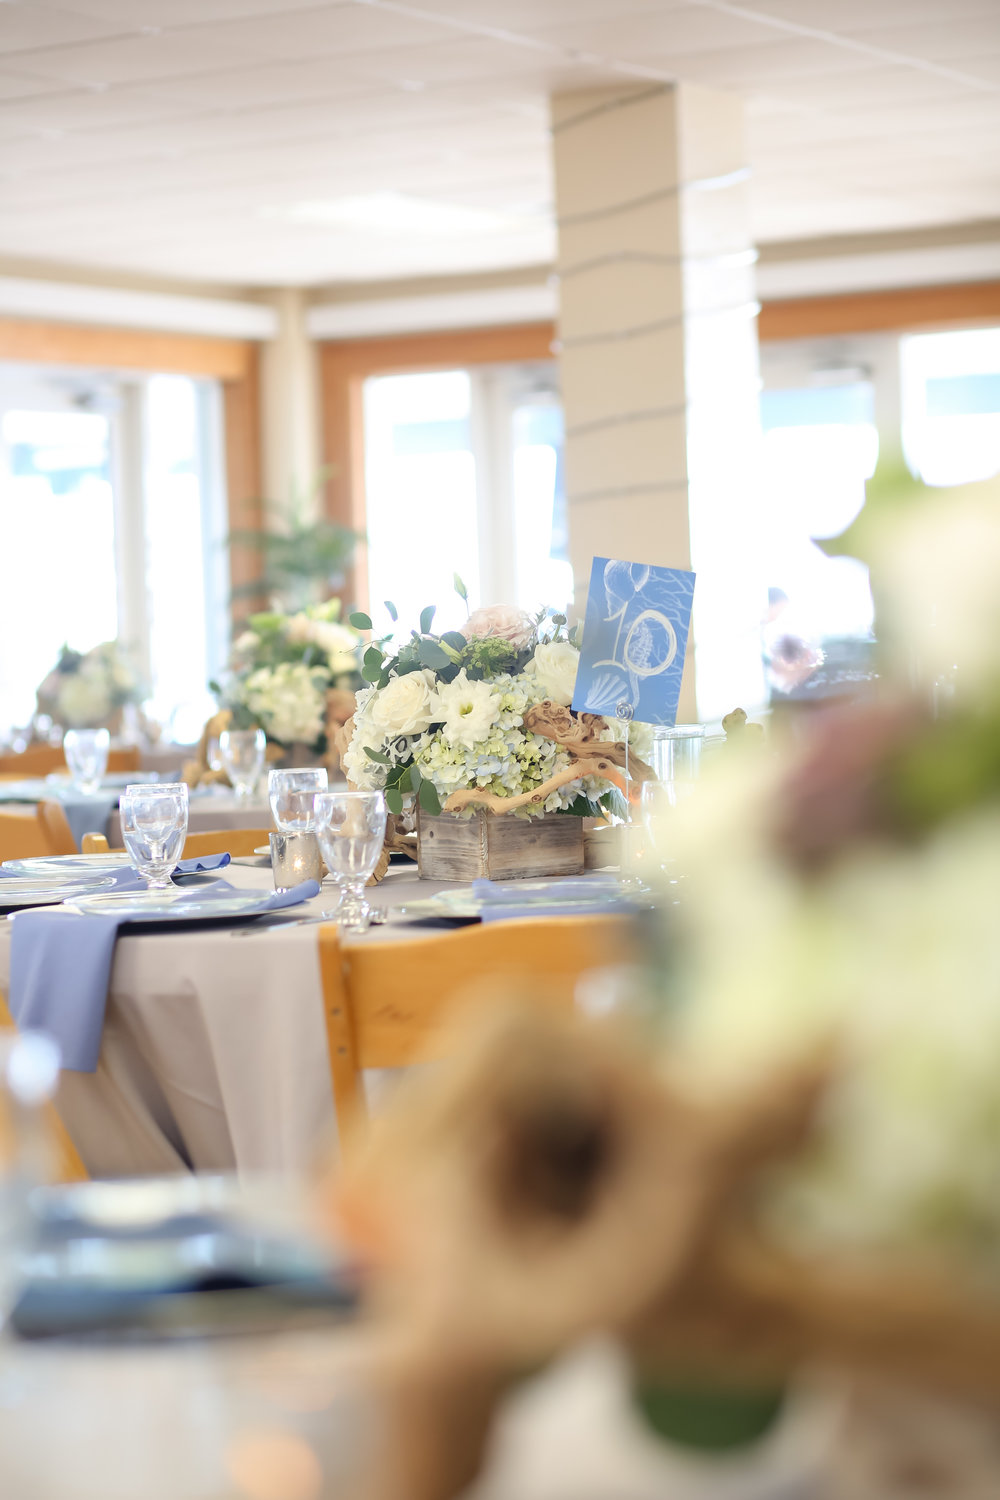 A coastal chic motif incorporating sunbleached wood boxes gave a nod to the bride's rustic Southern style.